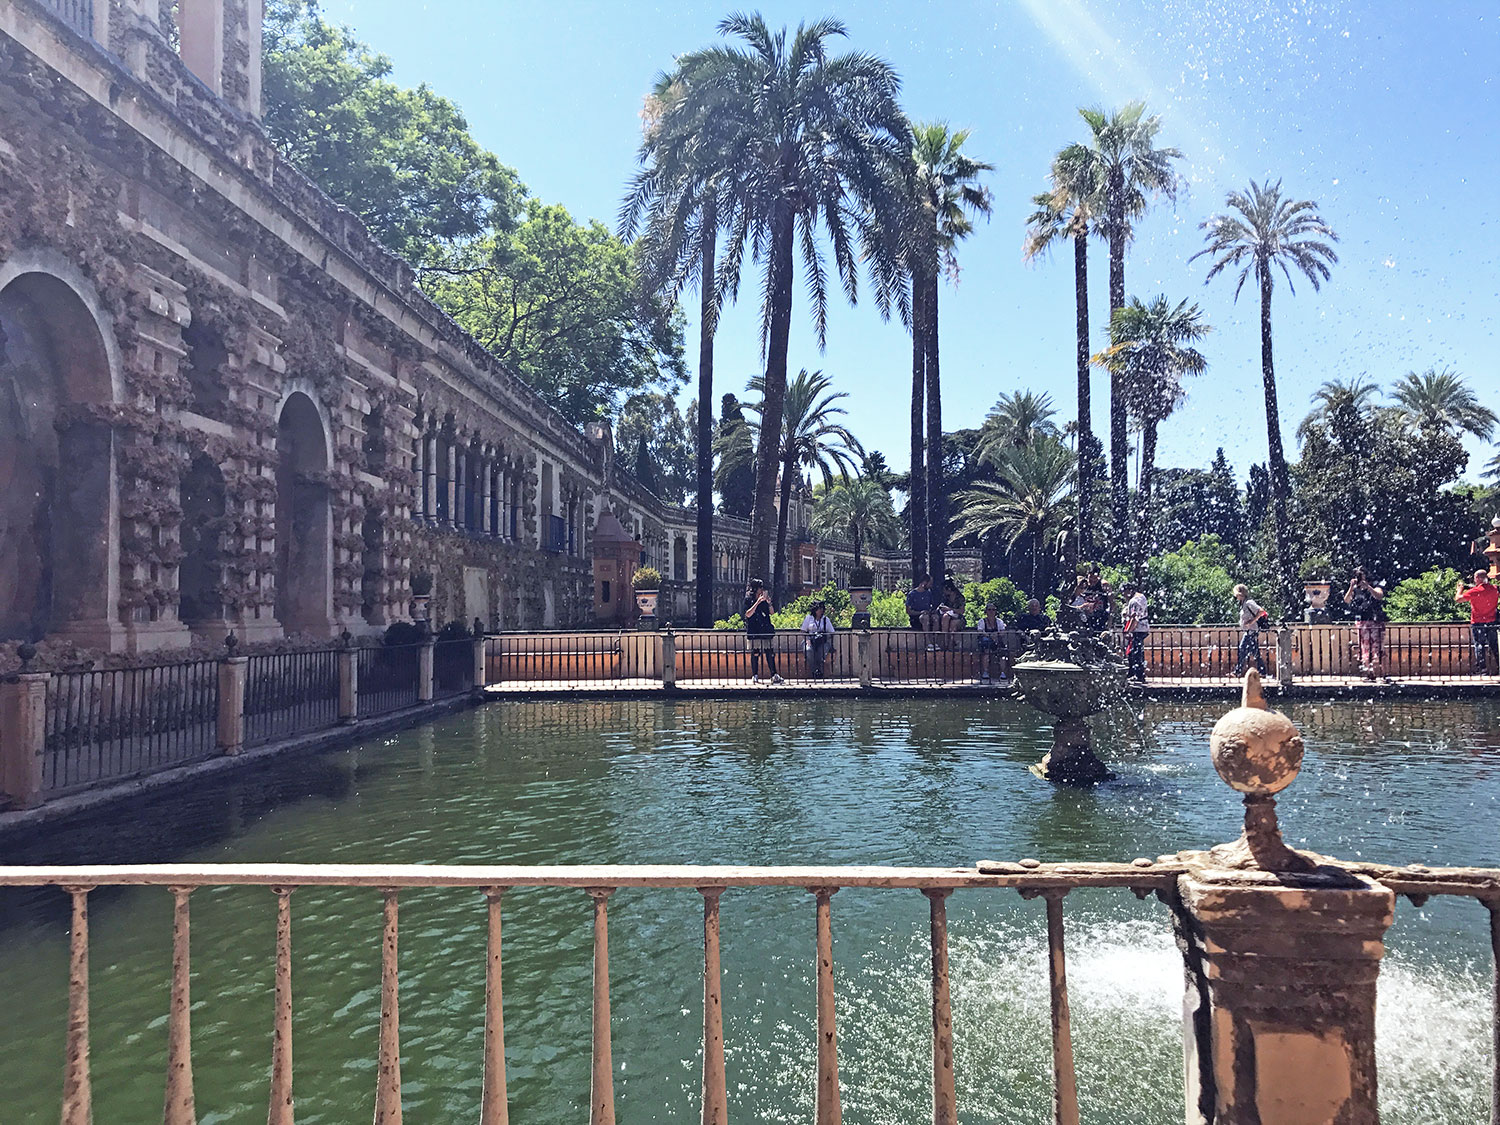 Mercury Pond at the Alcázar Seville, Spain with the grotto gallery to the left